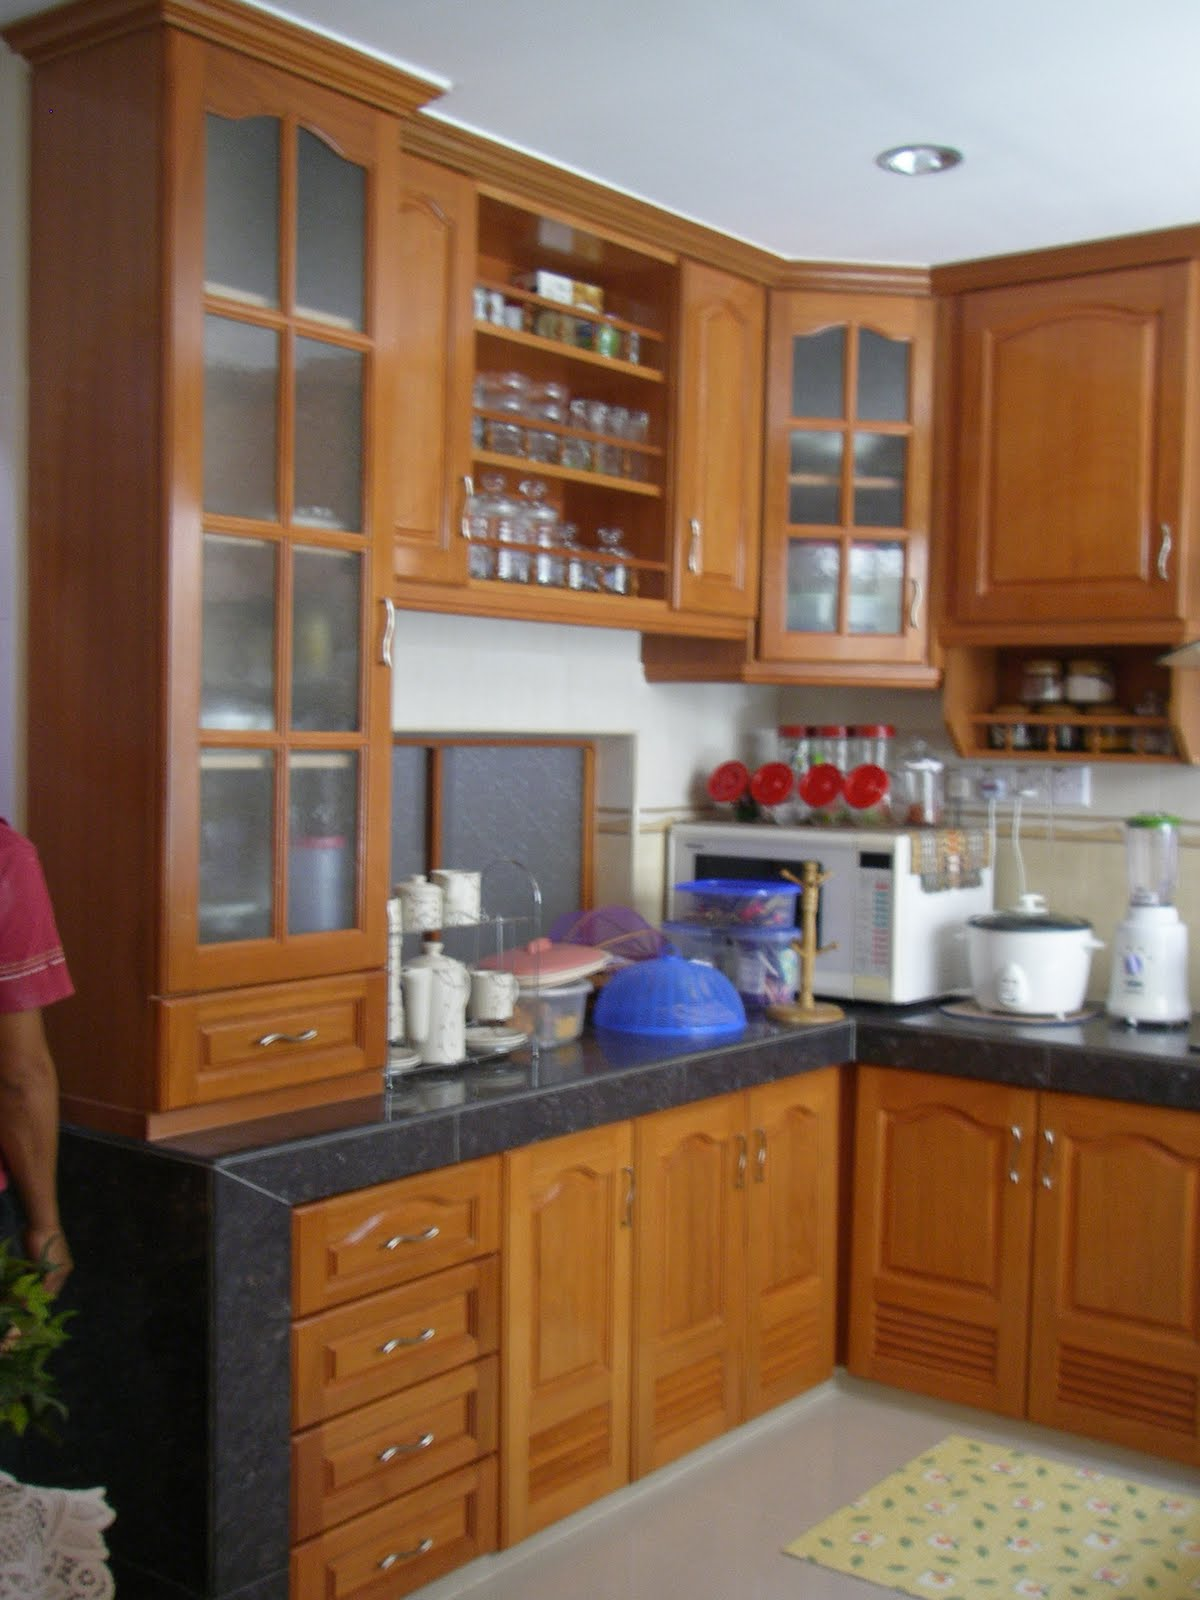 Warna2 Cat Rumah Siellza Furniture Kabinet Kayu Nyatoh